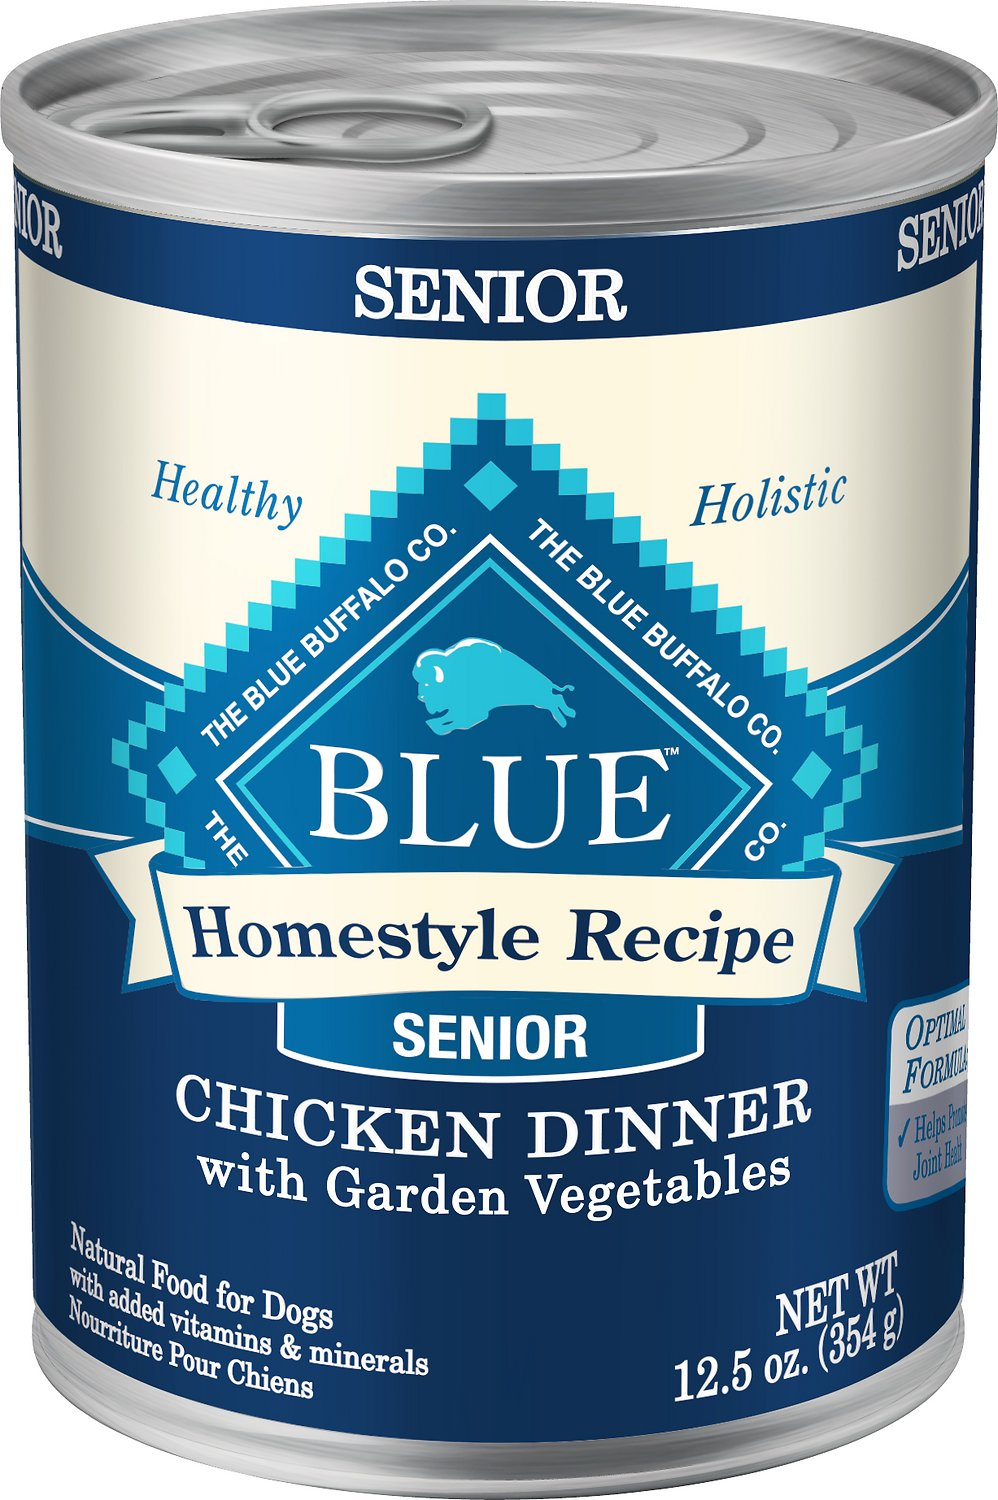 buffalo blue canned food diet